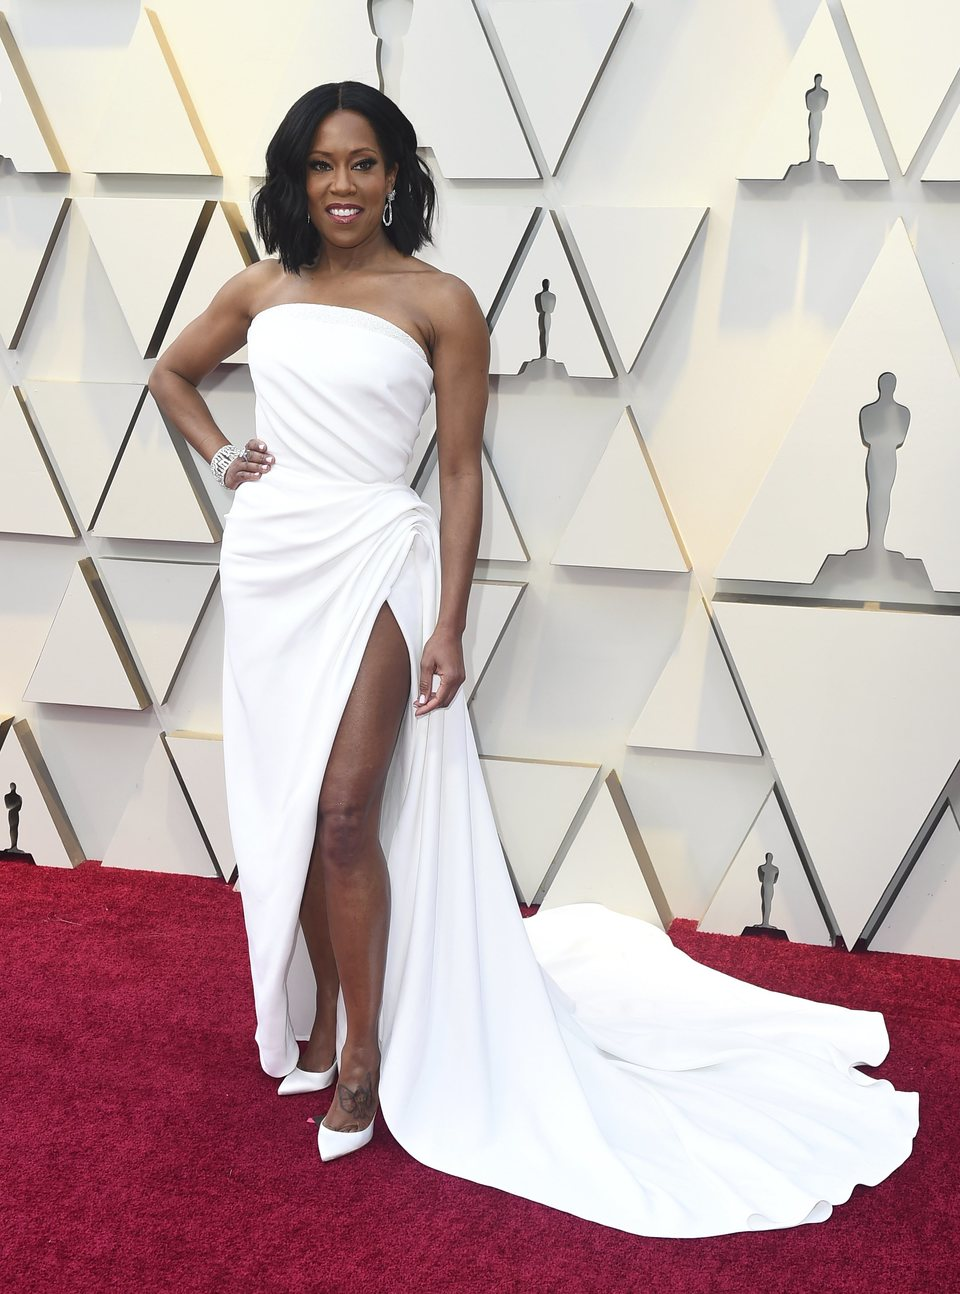 Regina King at the Oscars 2019 red carpet